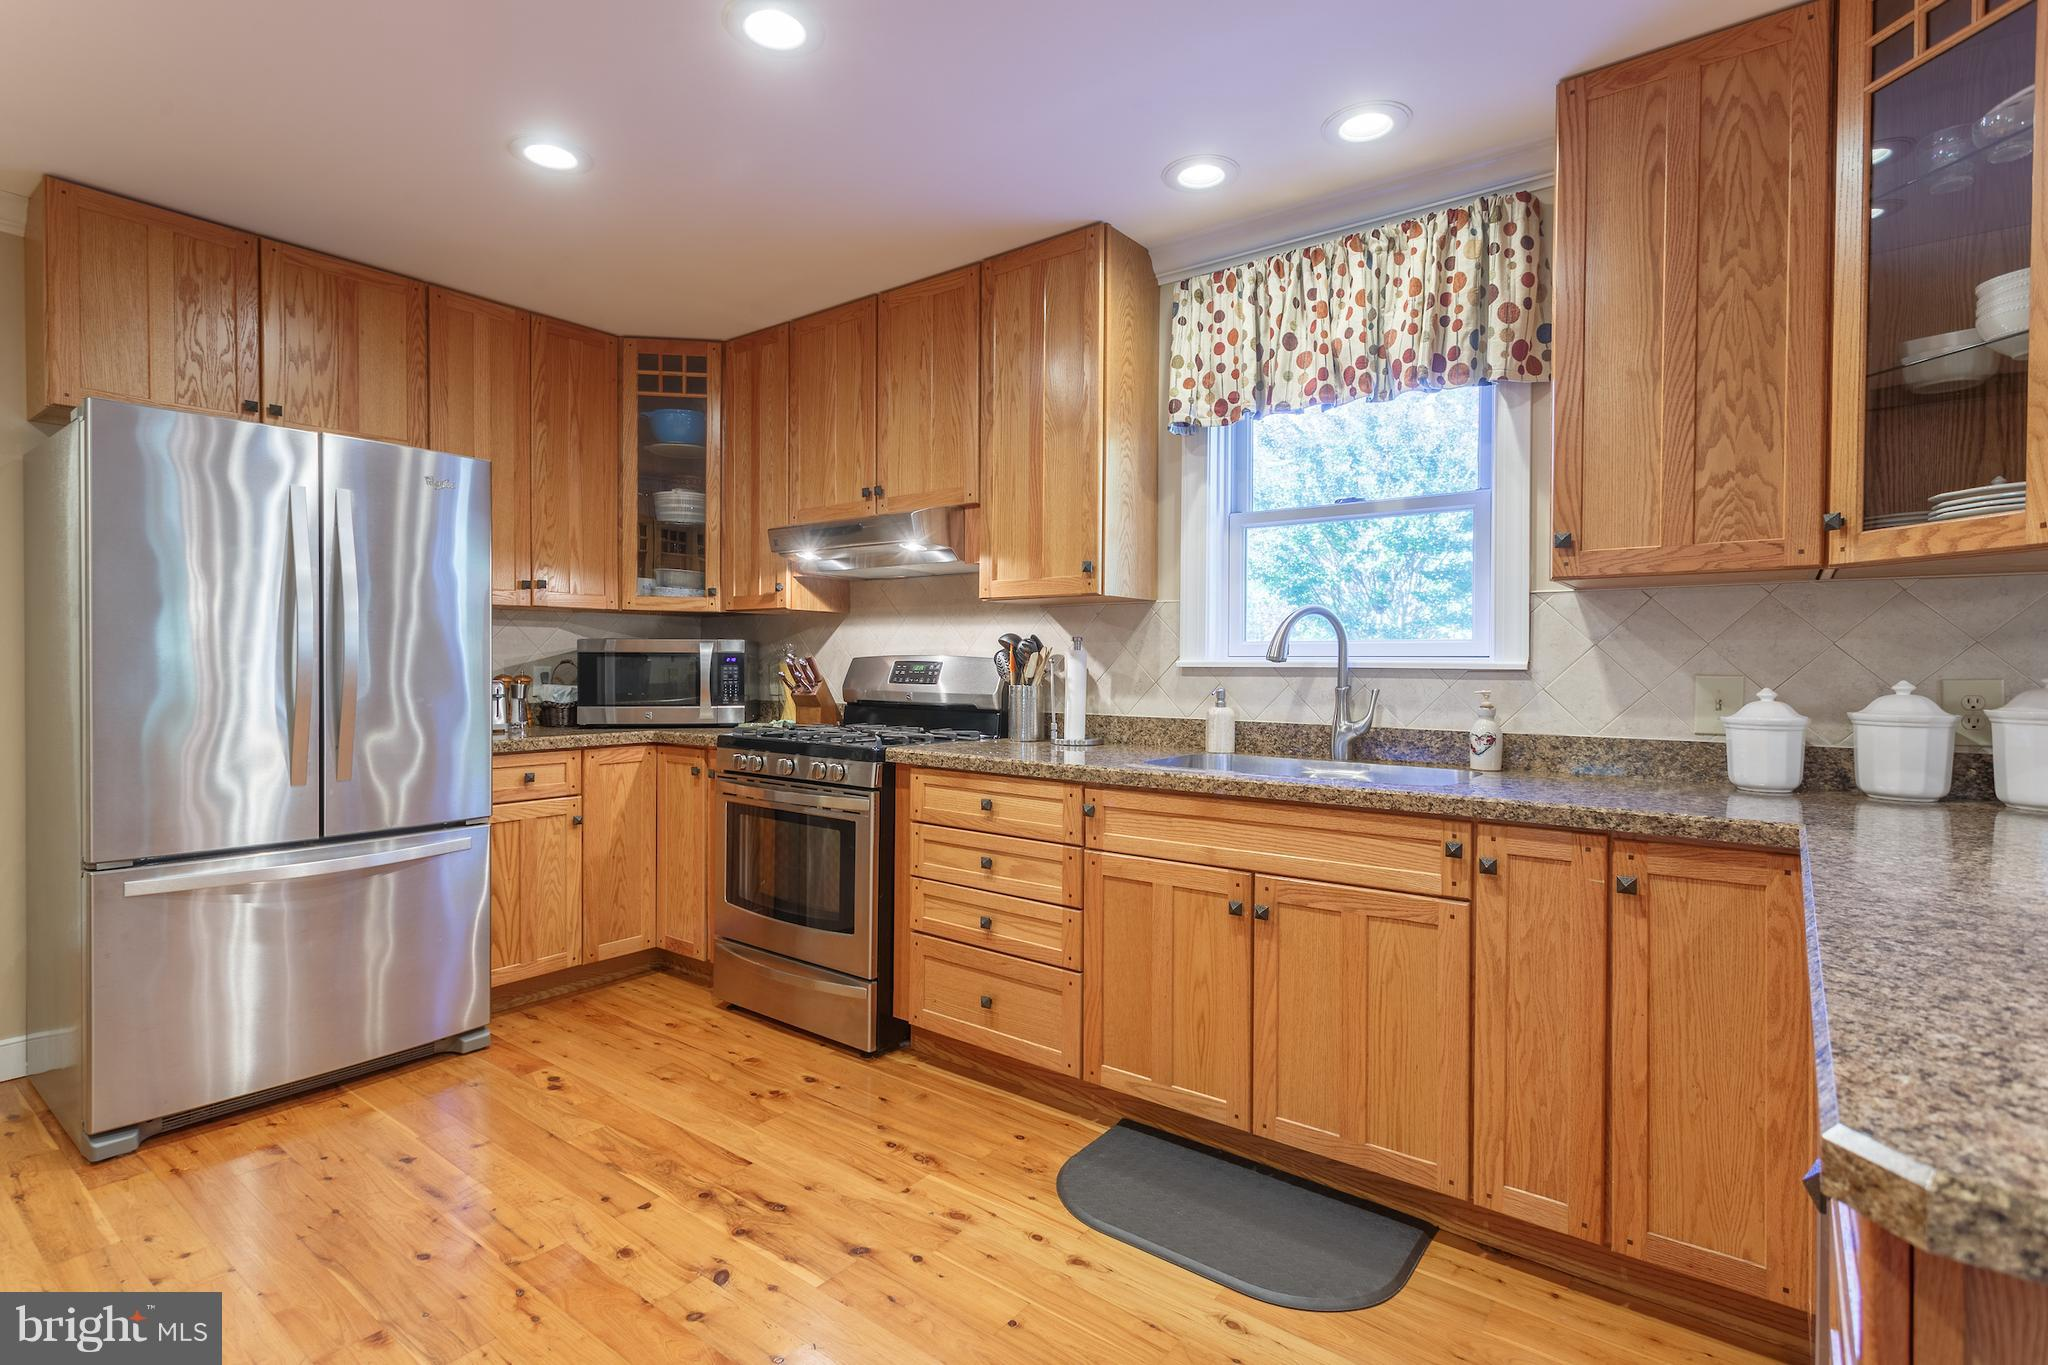 6006 Rock Hall Road, Rock Hall, MD 21661 - SOLD LISTING, MLS # 1009942978 |  RE/MAX of Reading